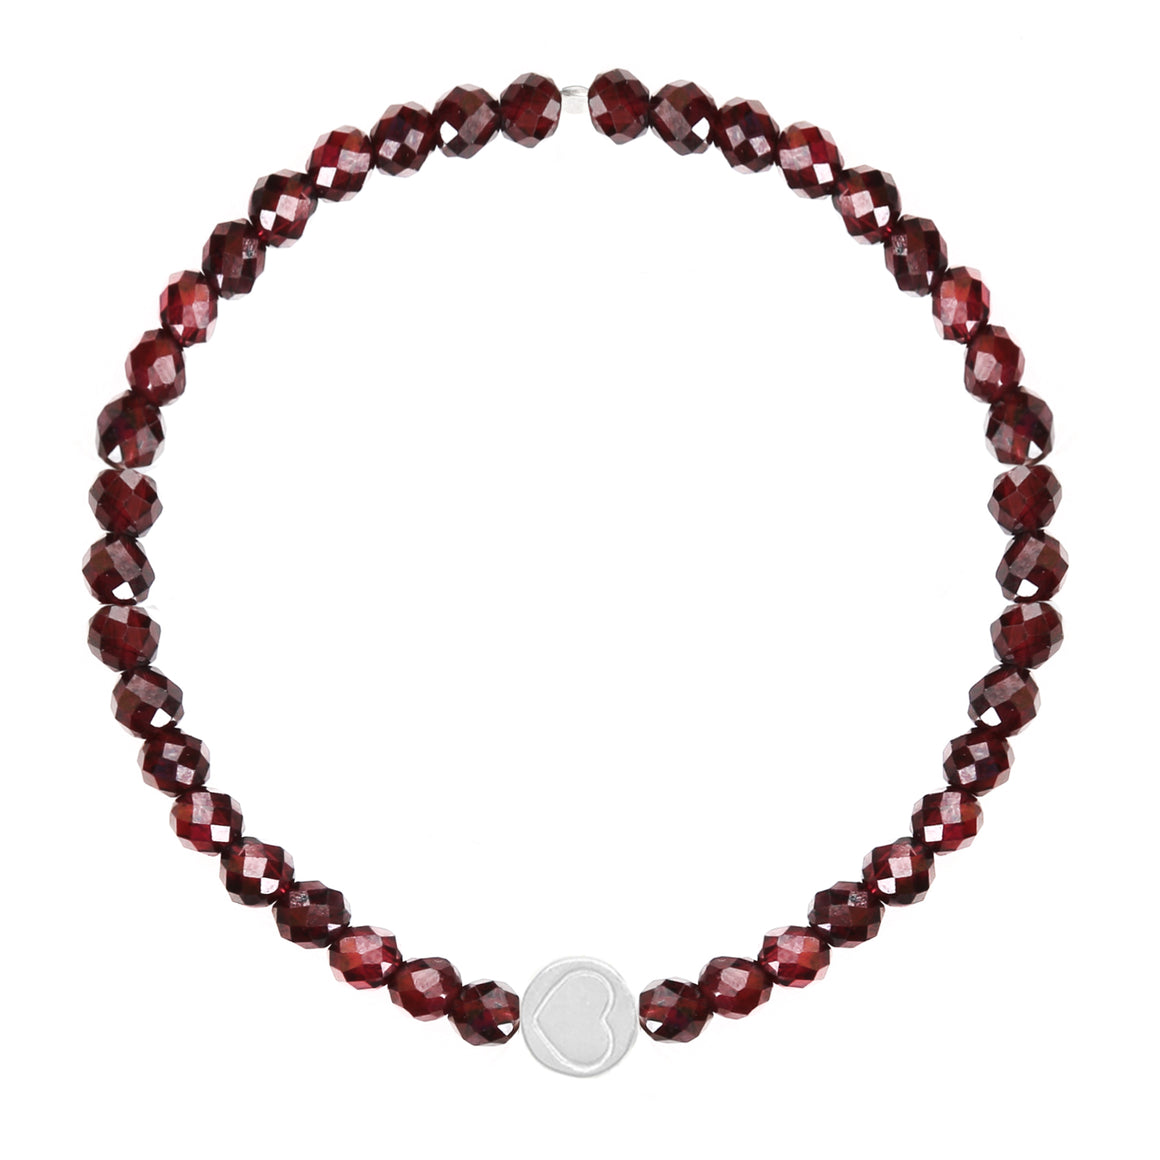 Garnet & Sterling Silver Friendship Heart Bracelet